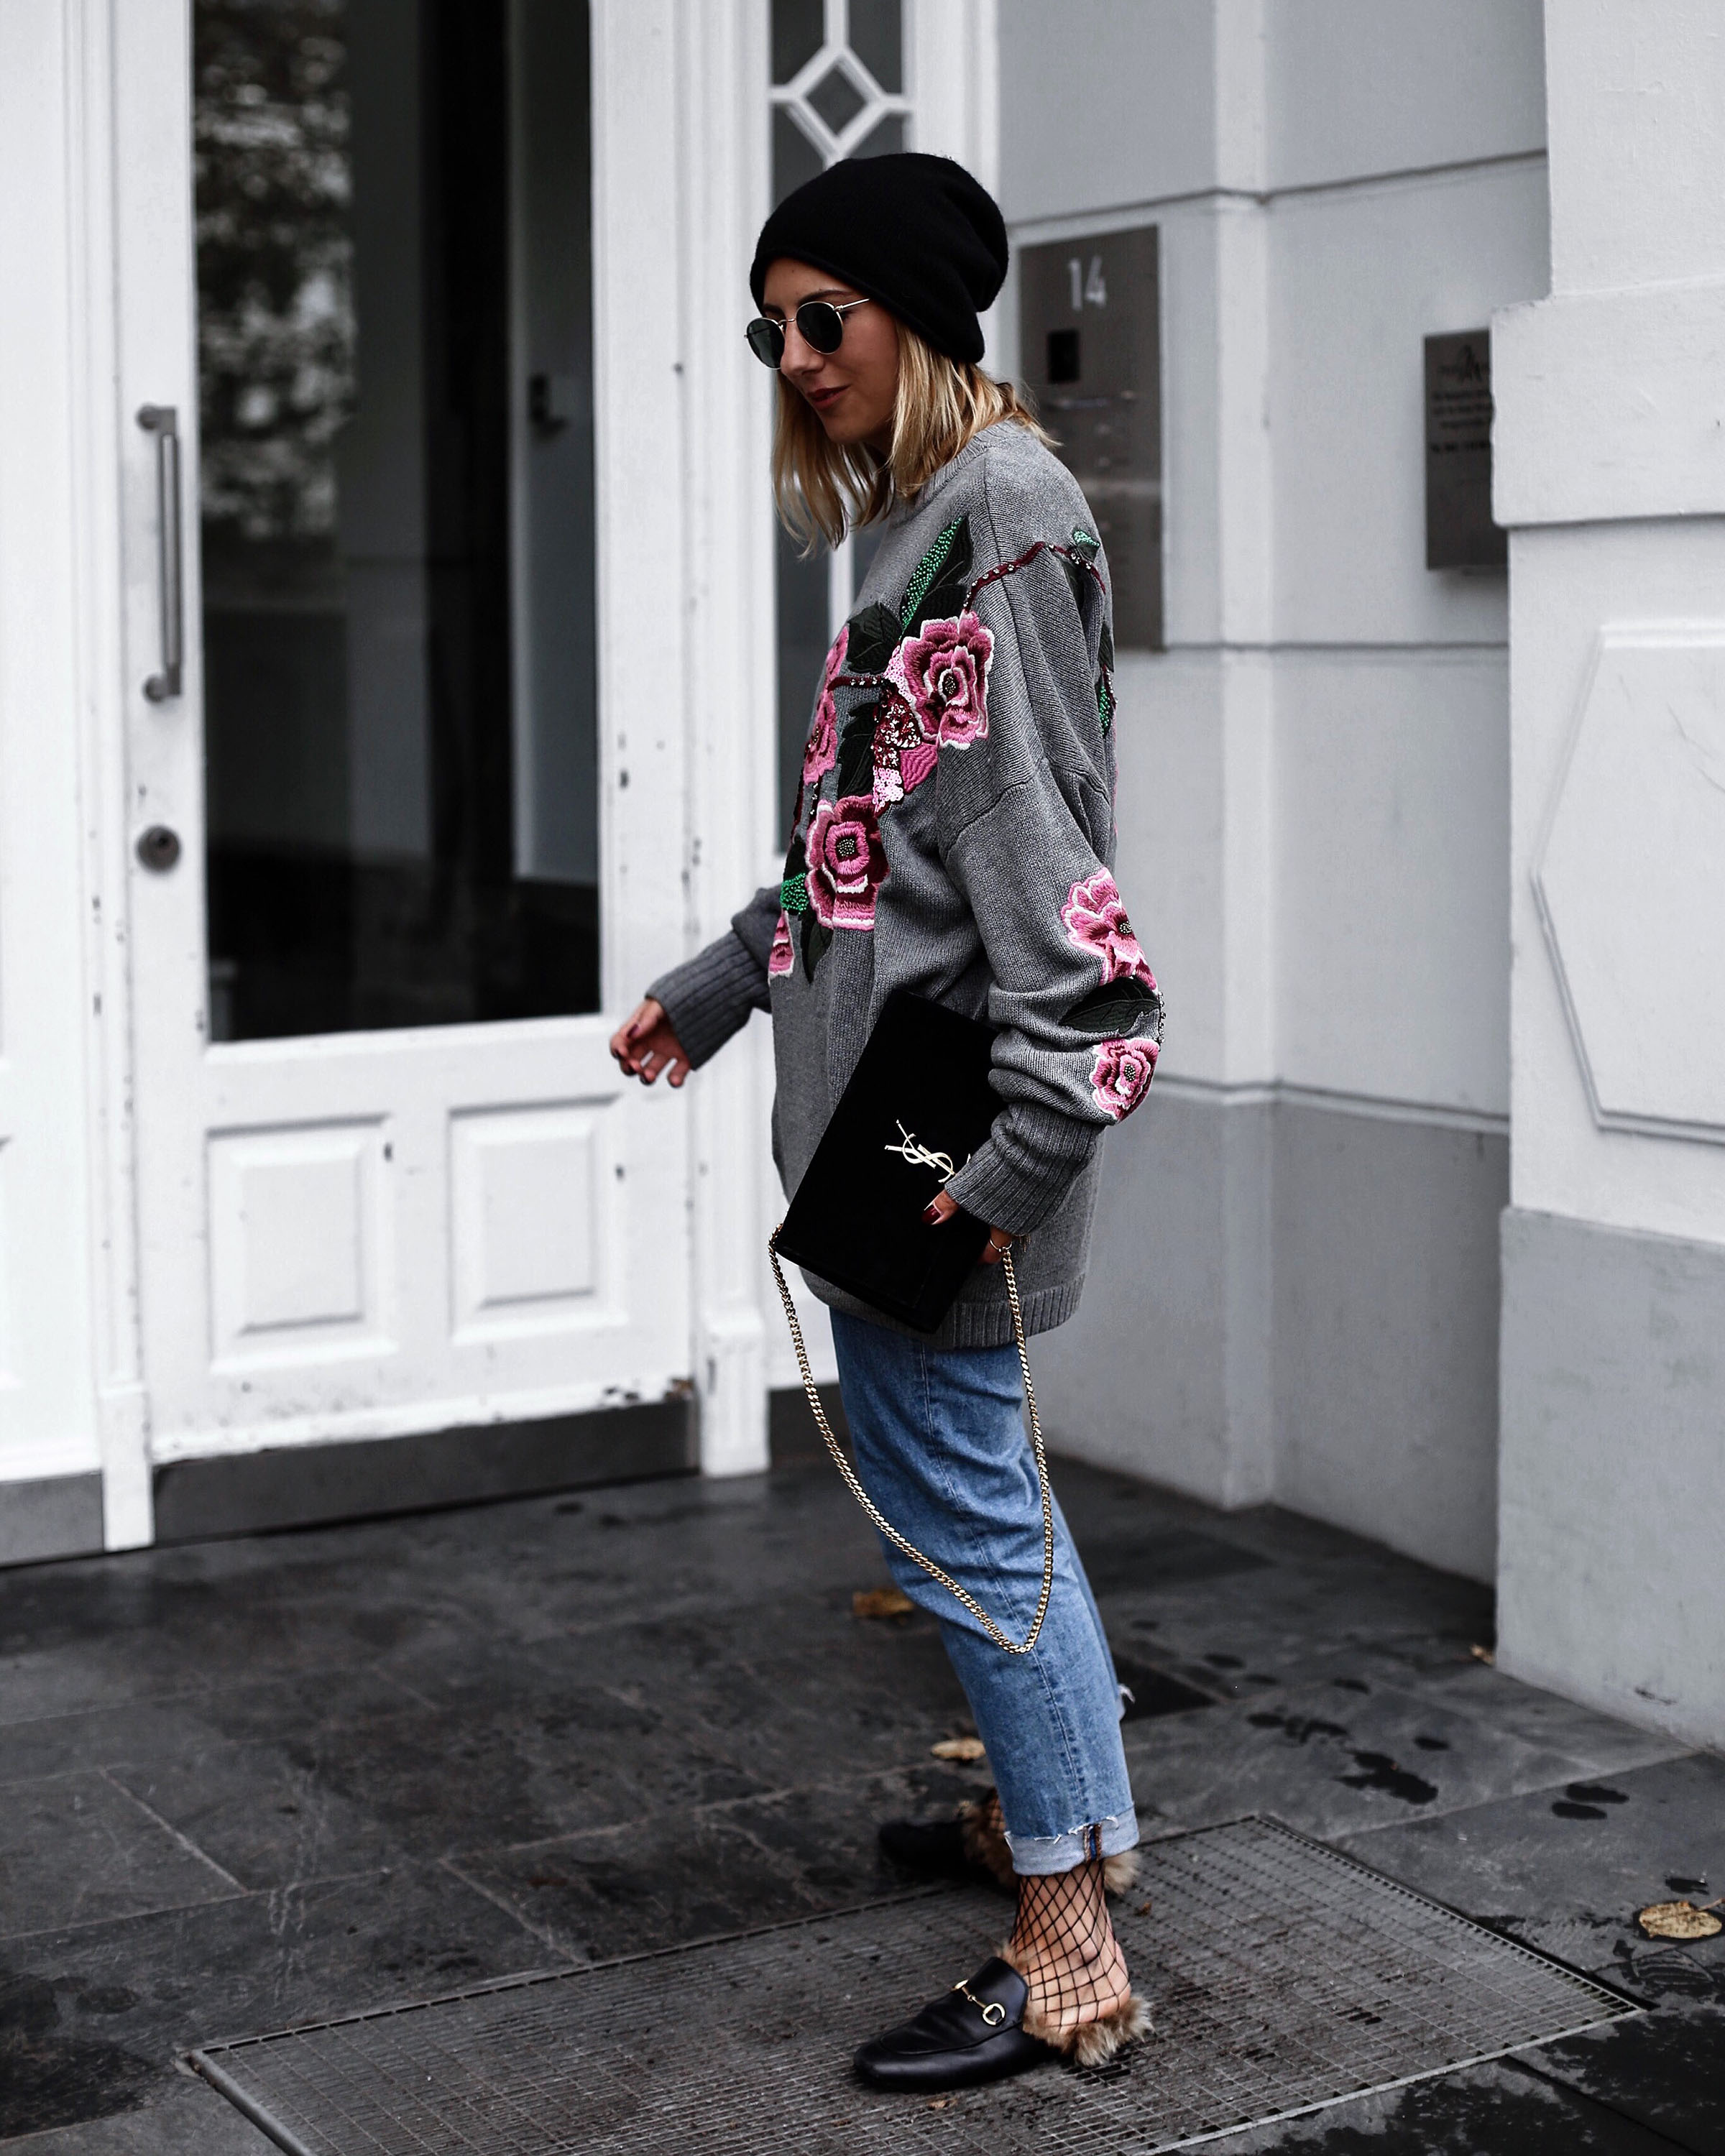 hm_trend_rose_sweater